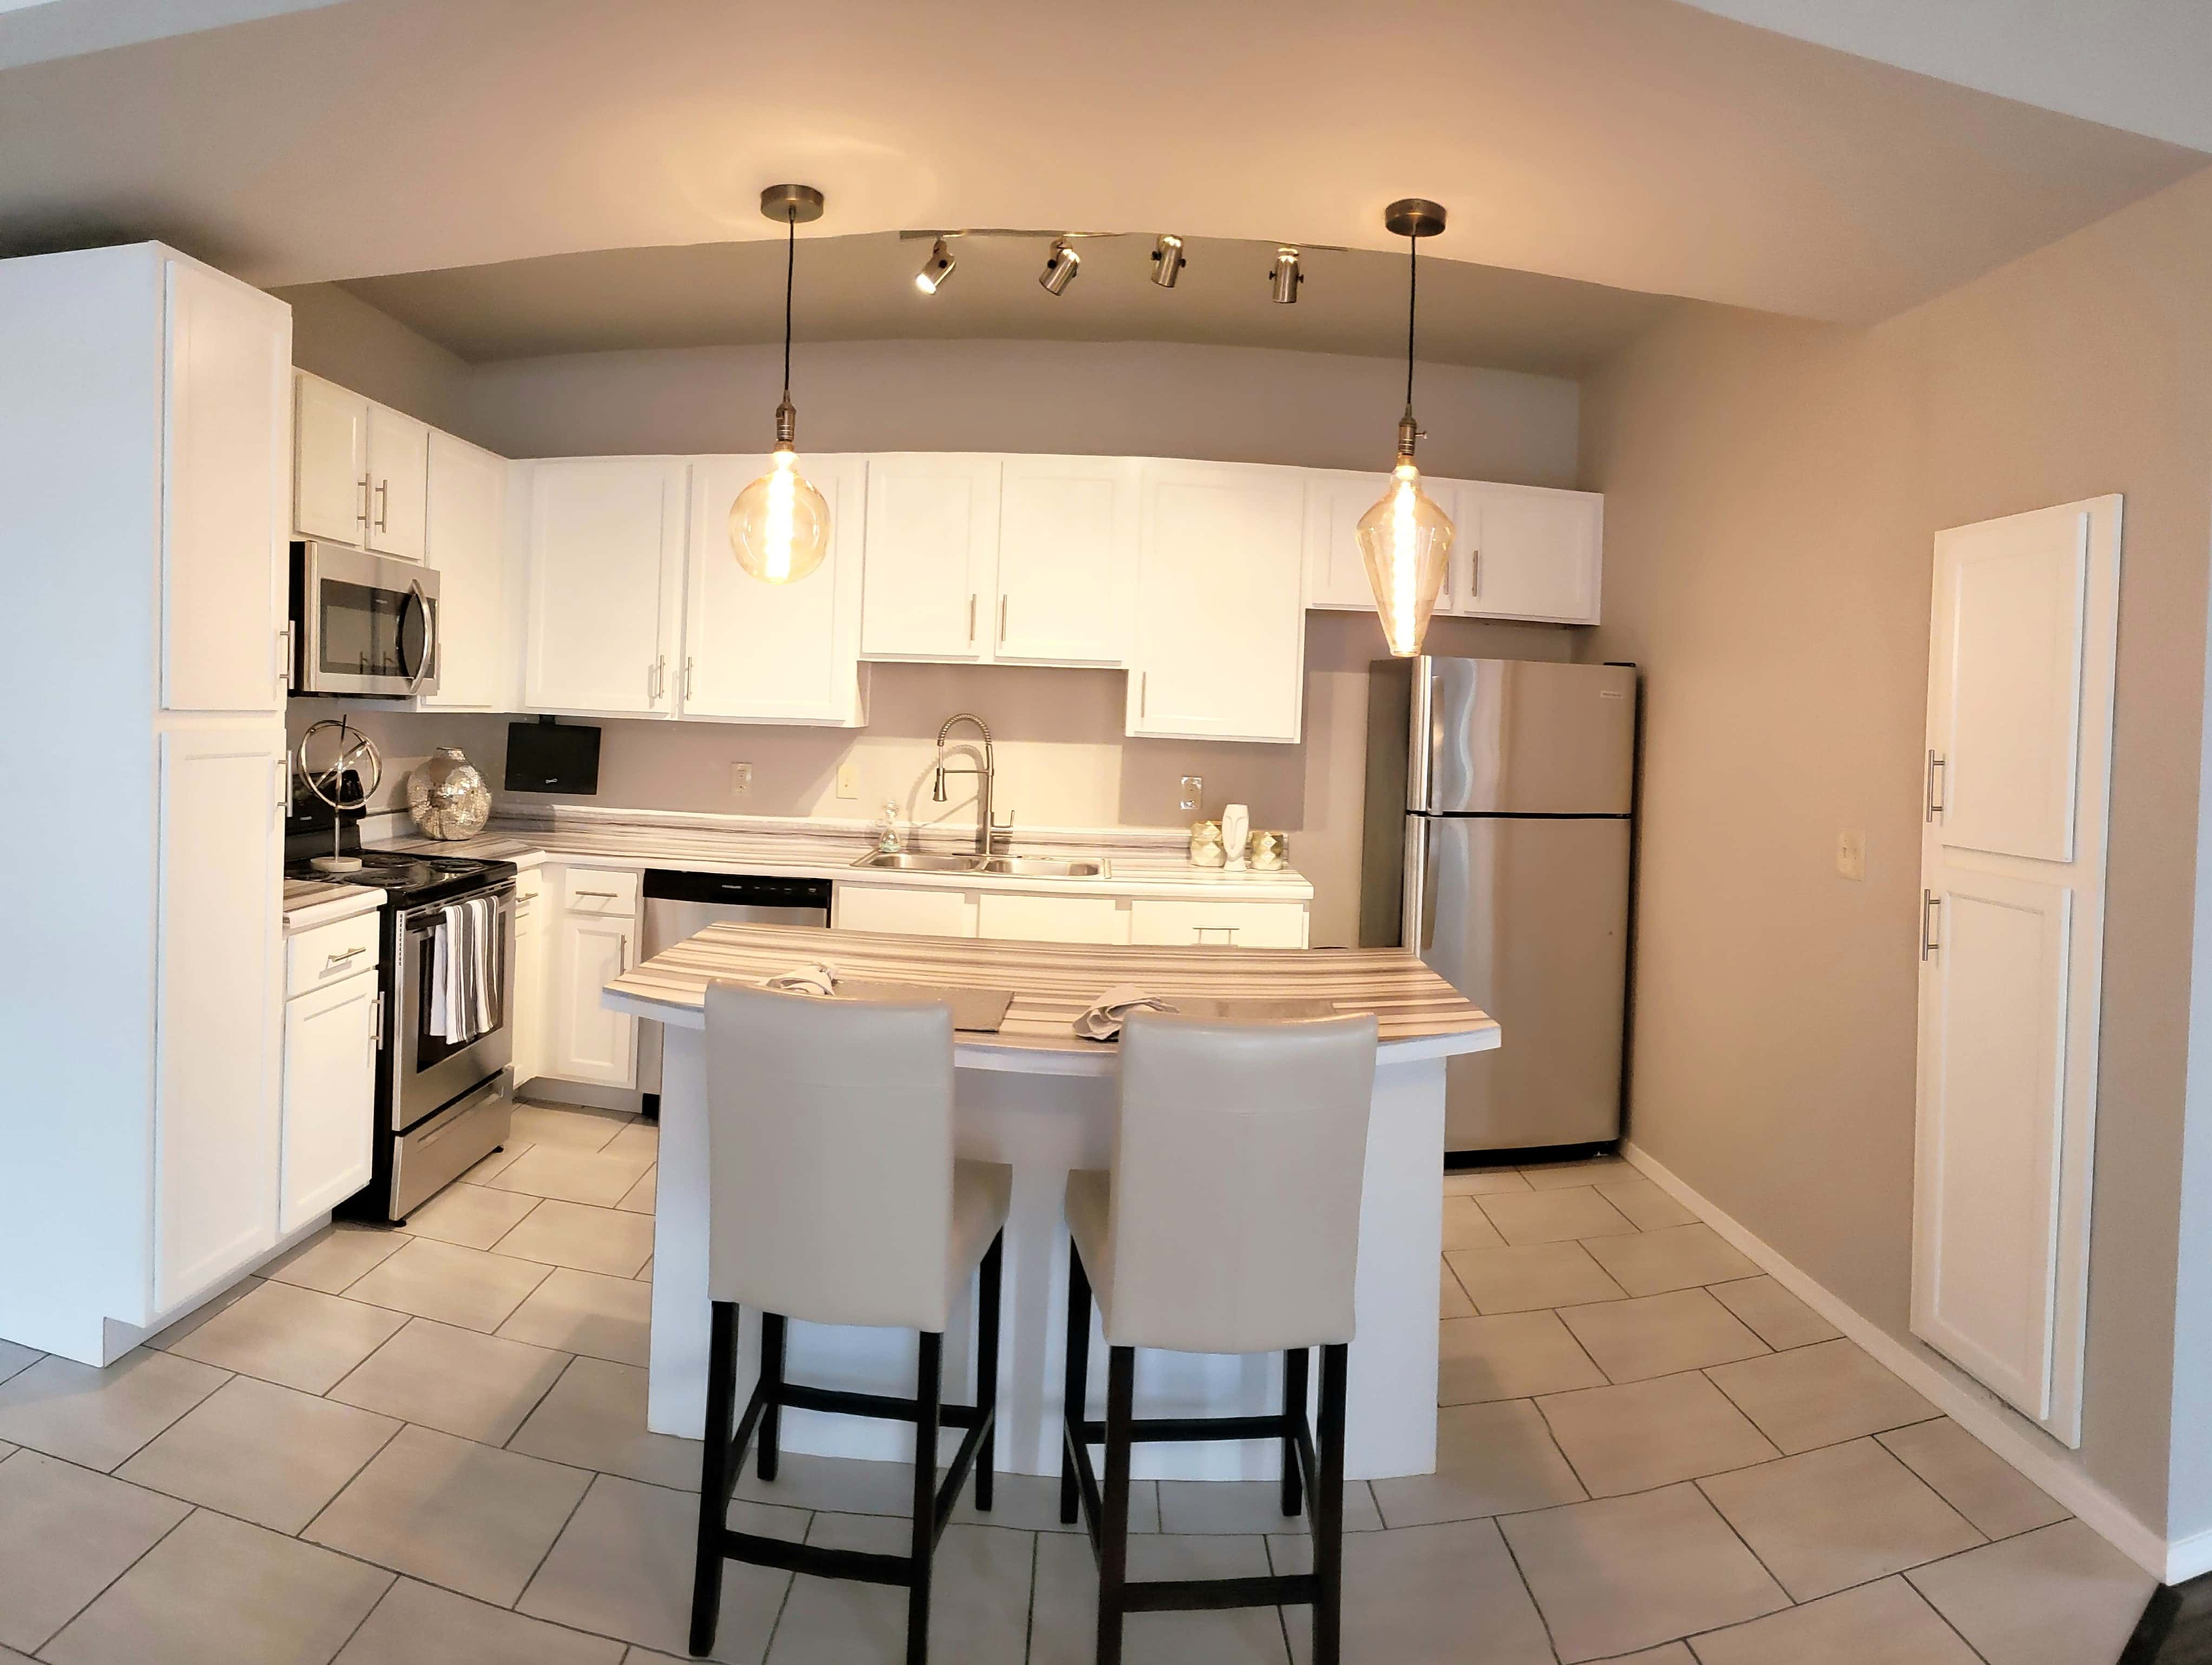 Kitchen at Crown at Lone Oak Apartments